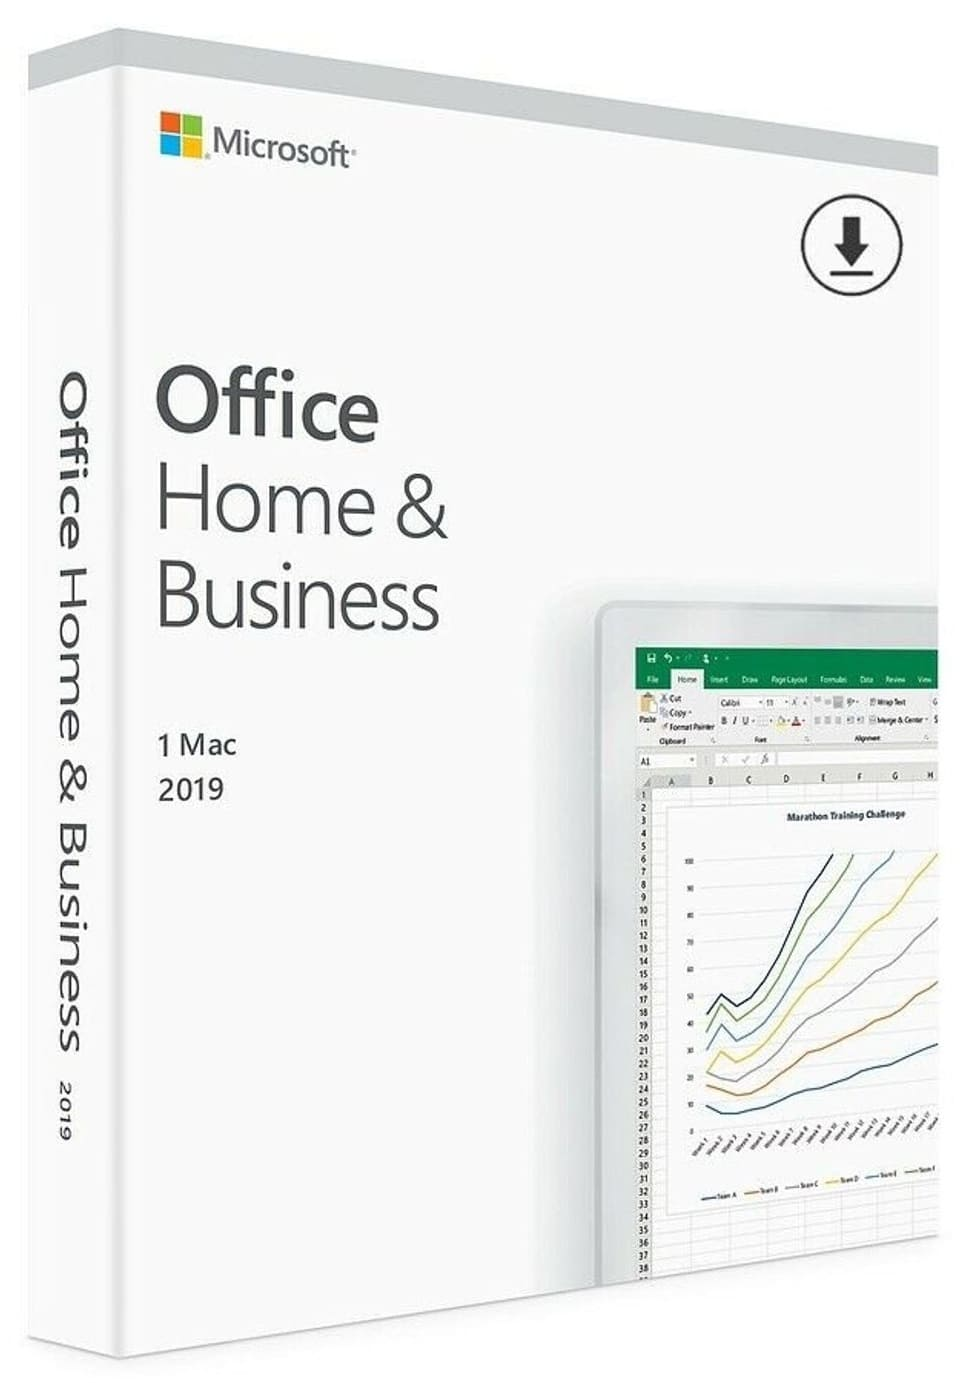 купить microsoft office 2019 Home and bussiness mac